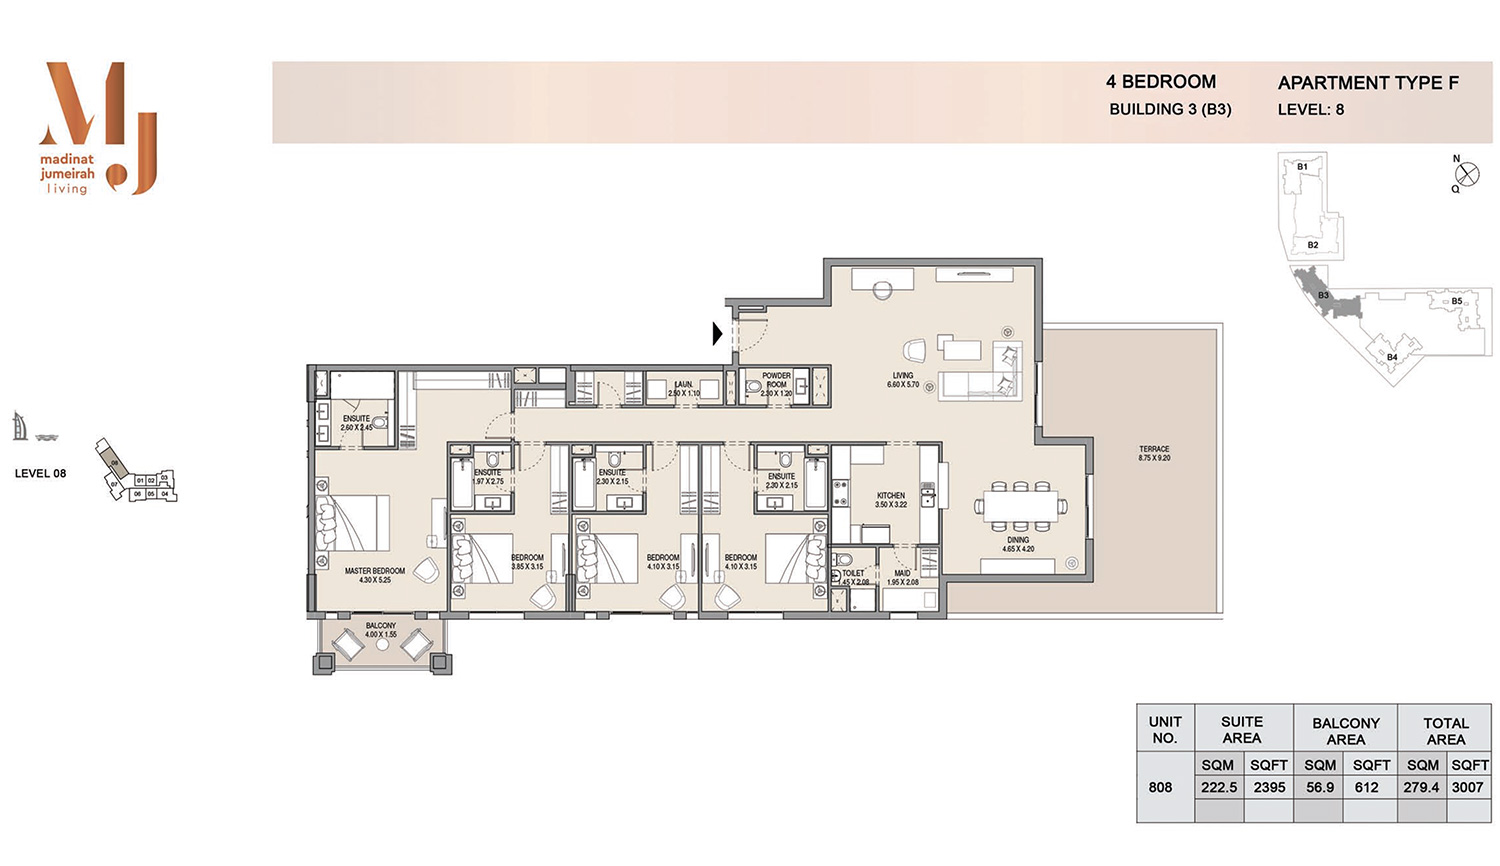 Building3 4 Bedroom, Type F, Levels 8, Size 3007 sq.ft